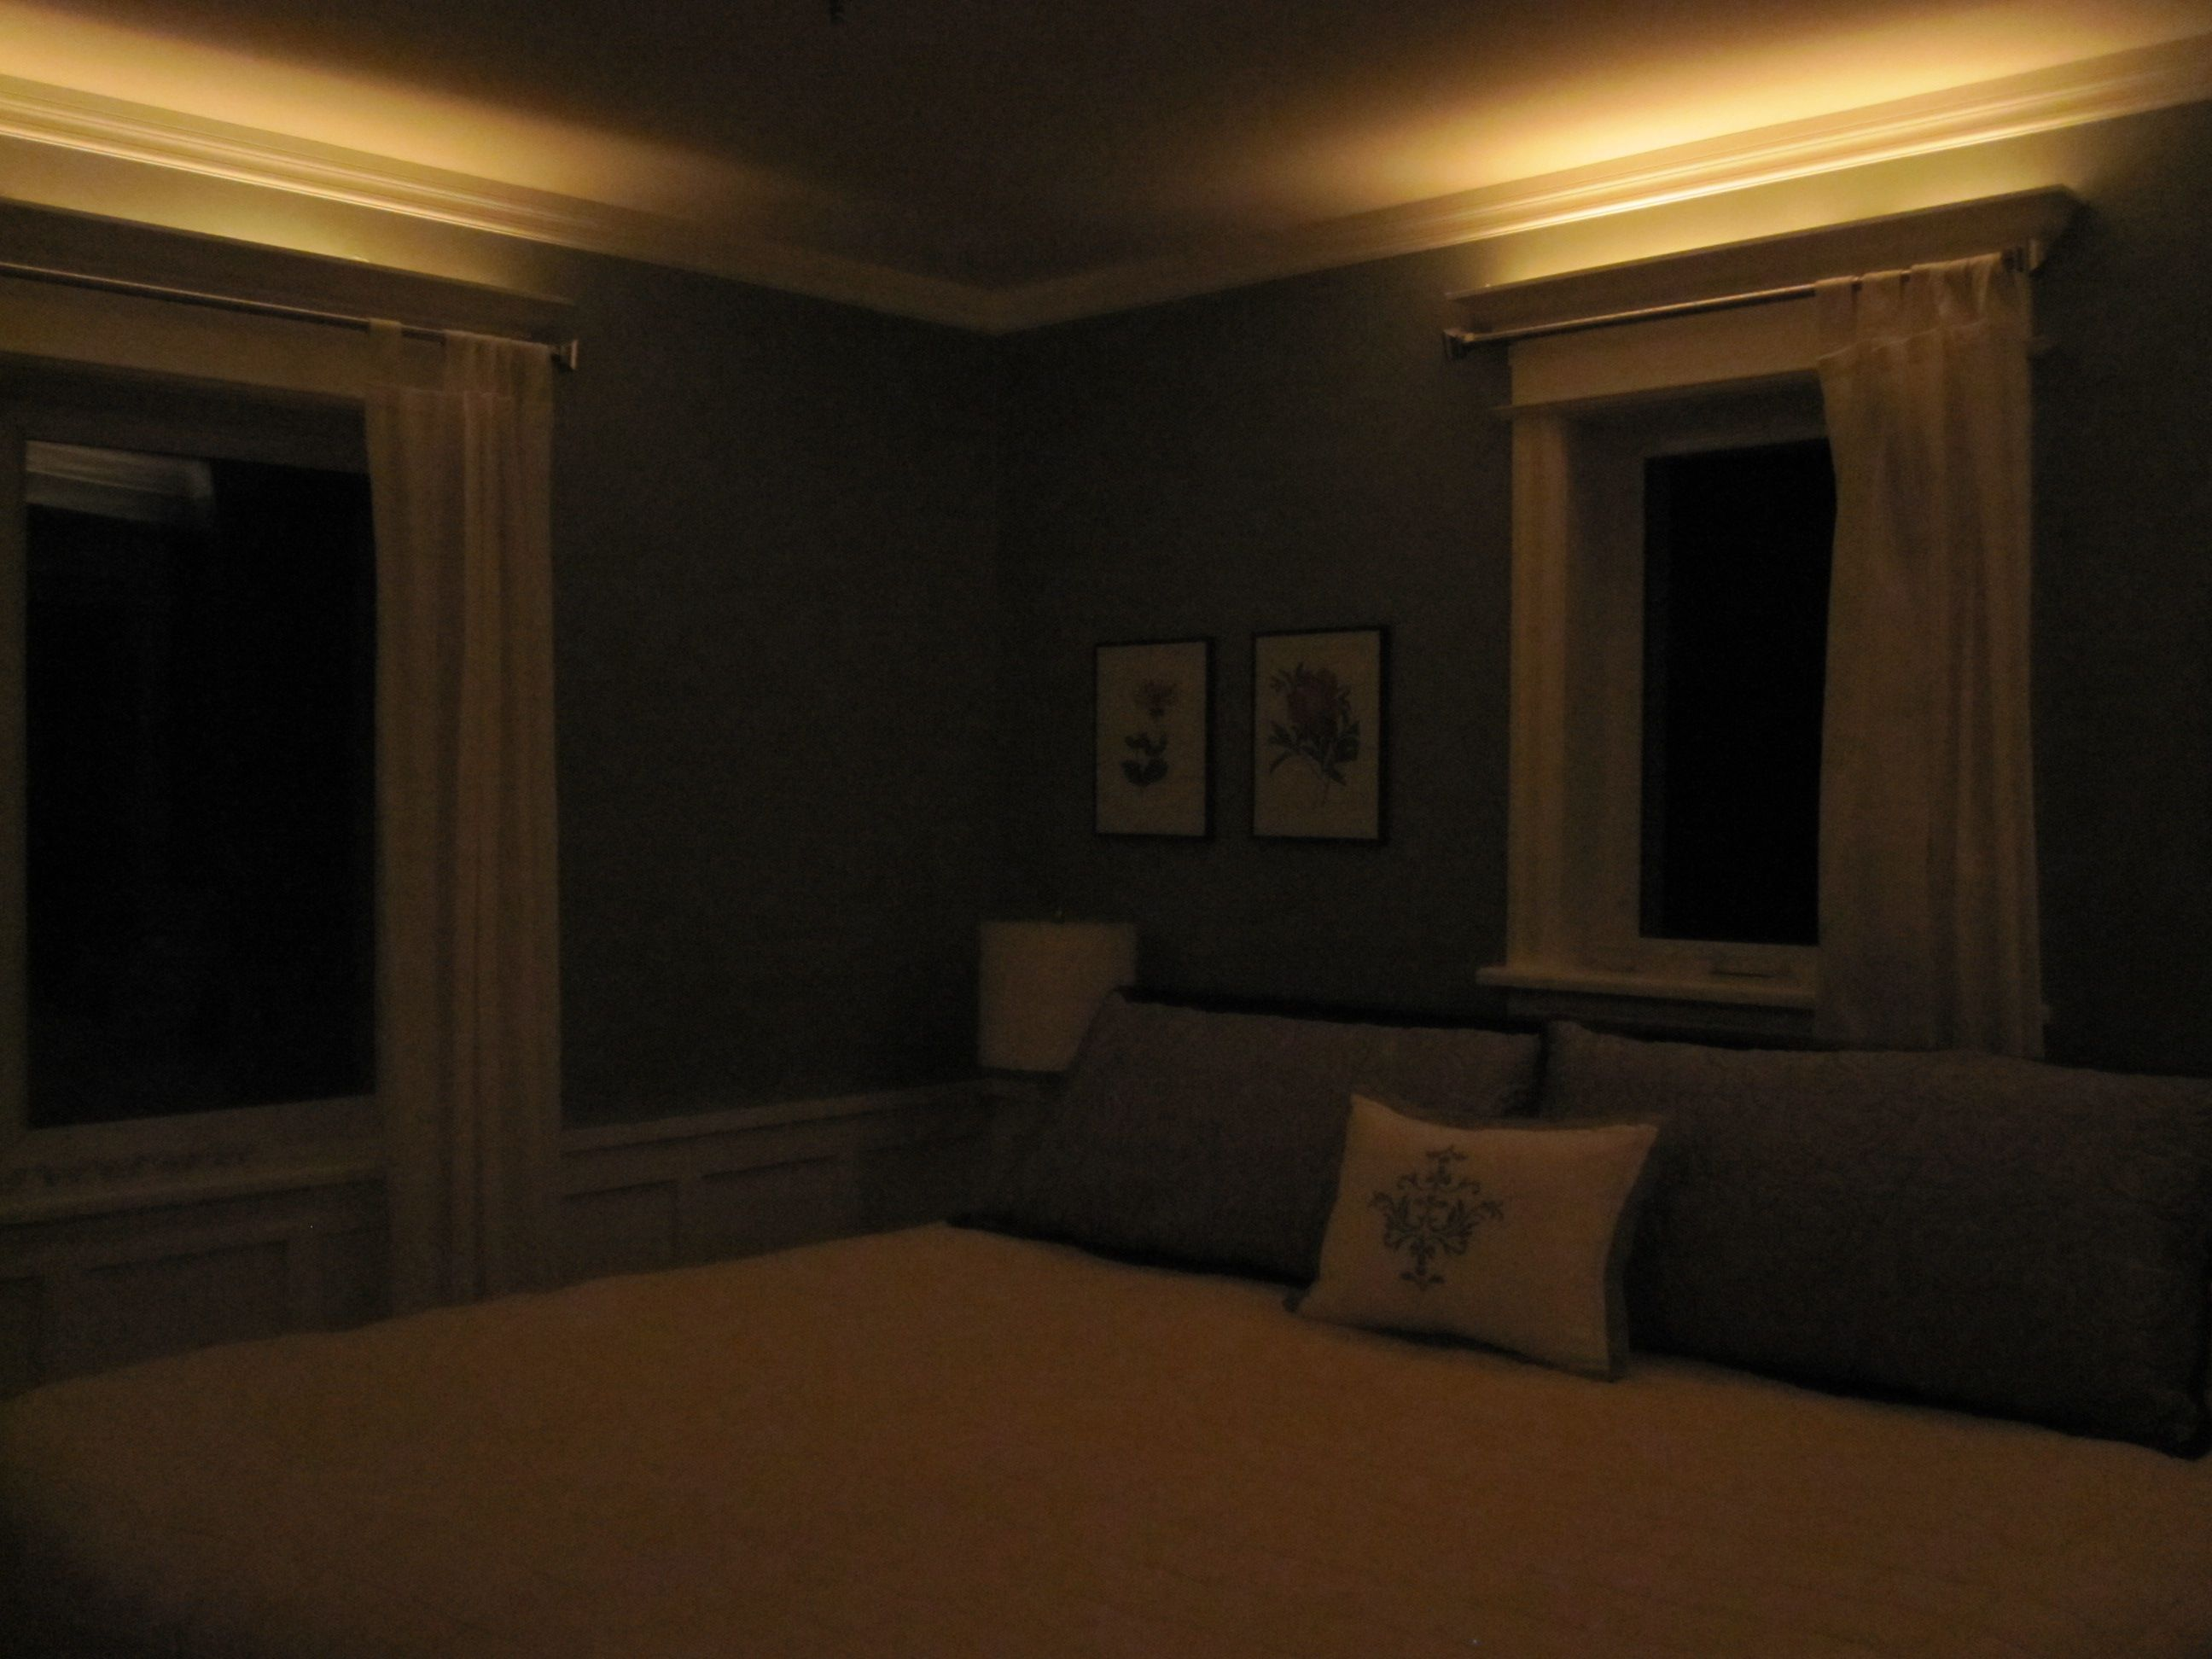 crown moulding lighting. Glowing Crown Moulding And Other Trims Lighting -